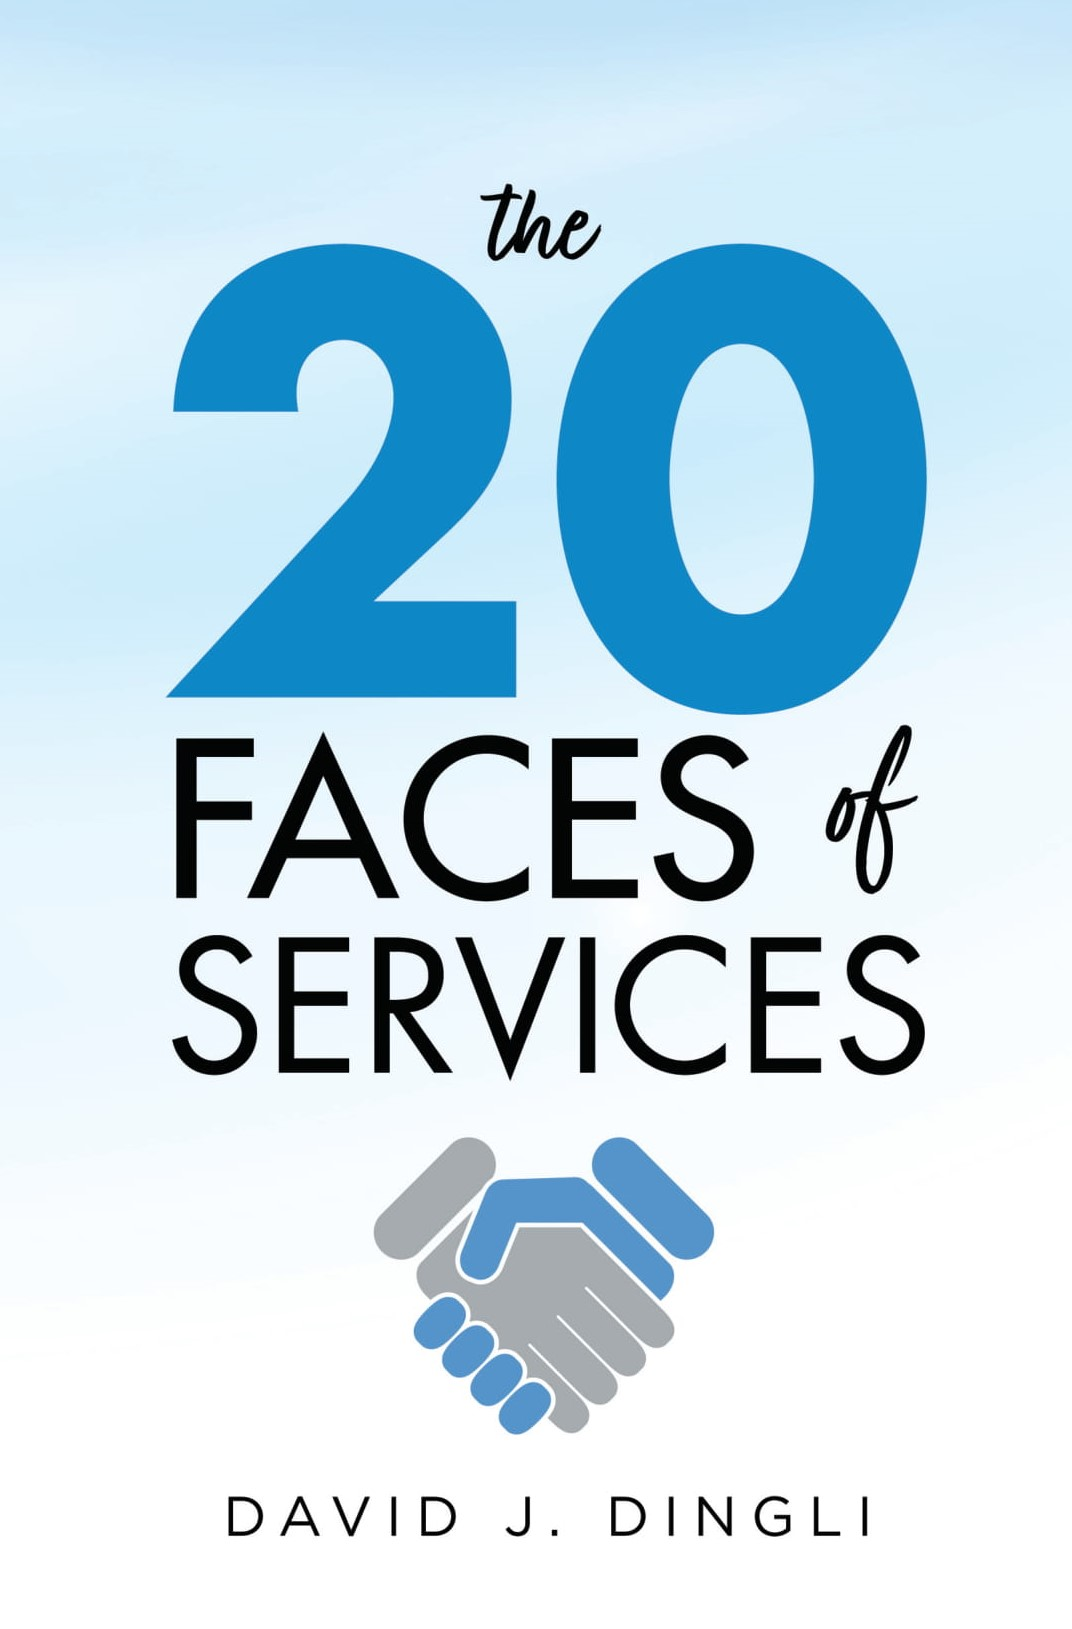 the 20 faces of services